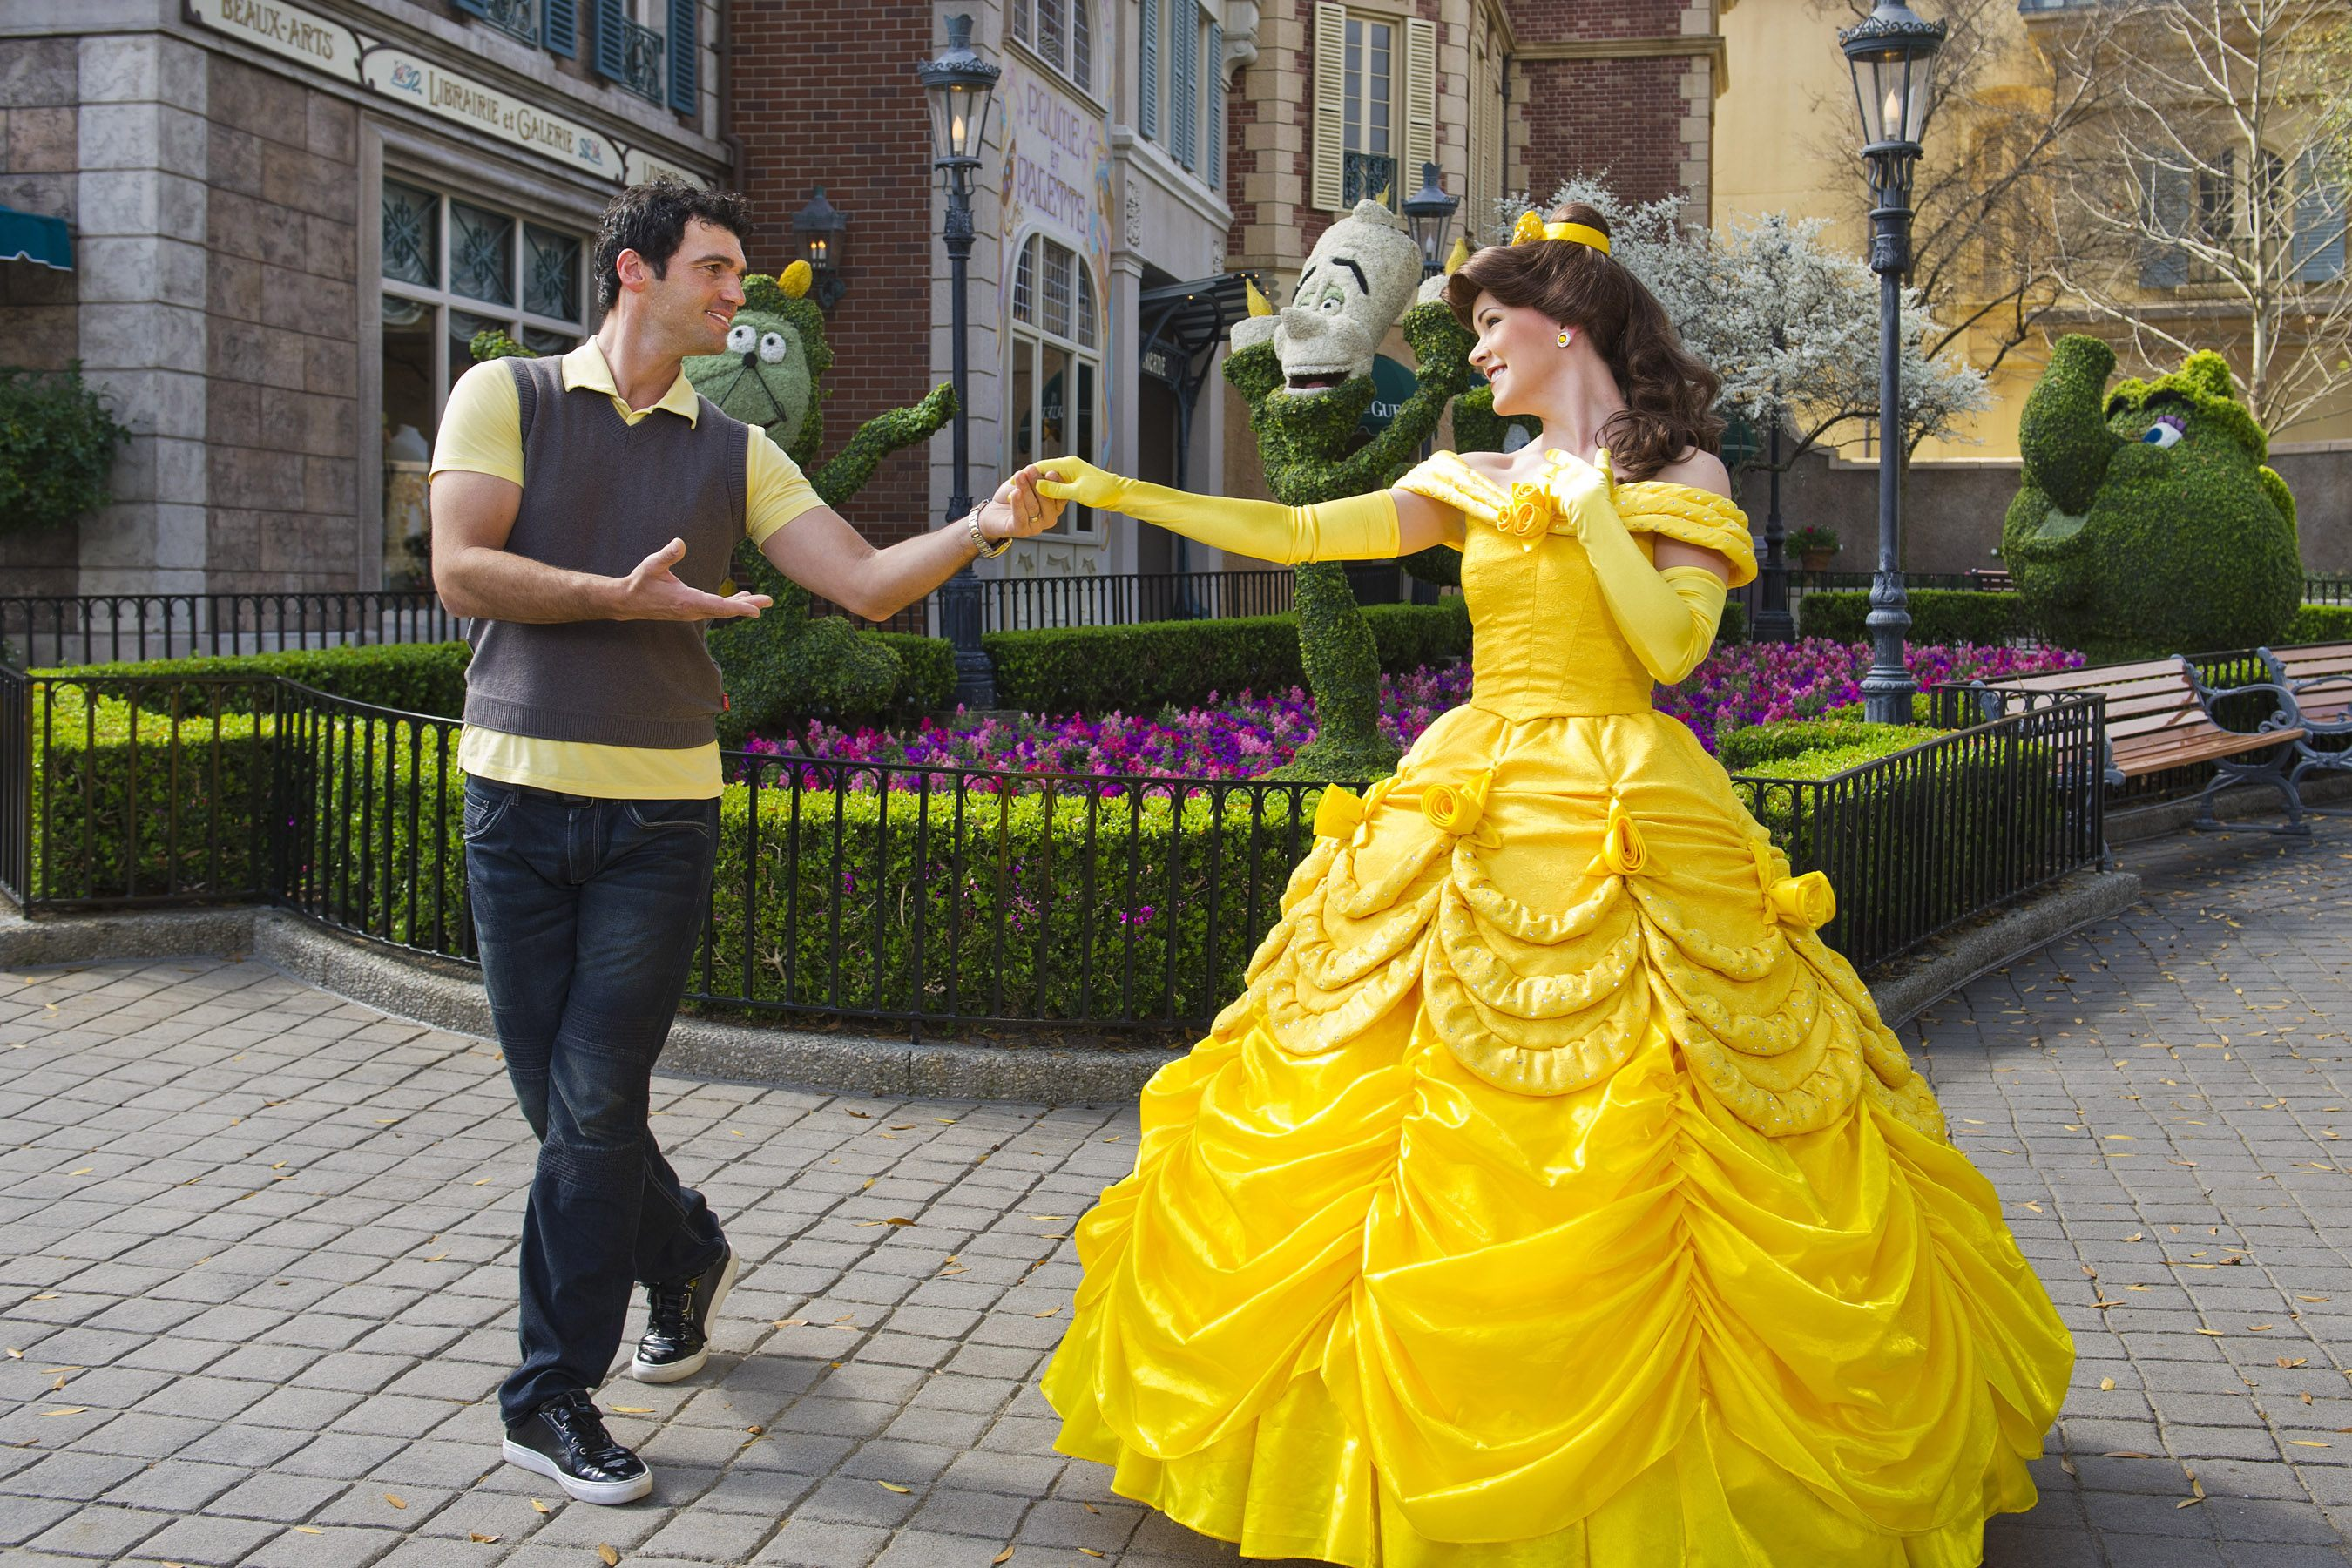 belle and a man dancing in disney